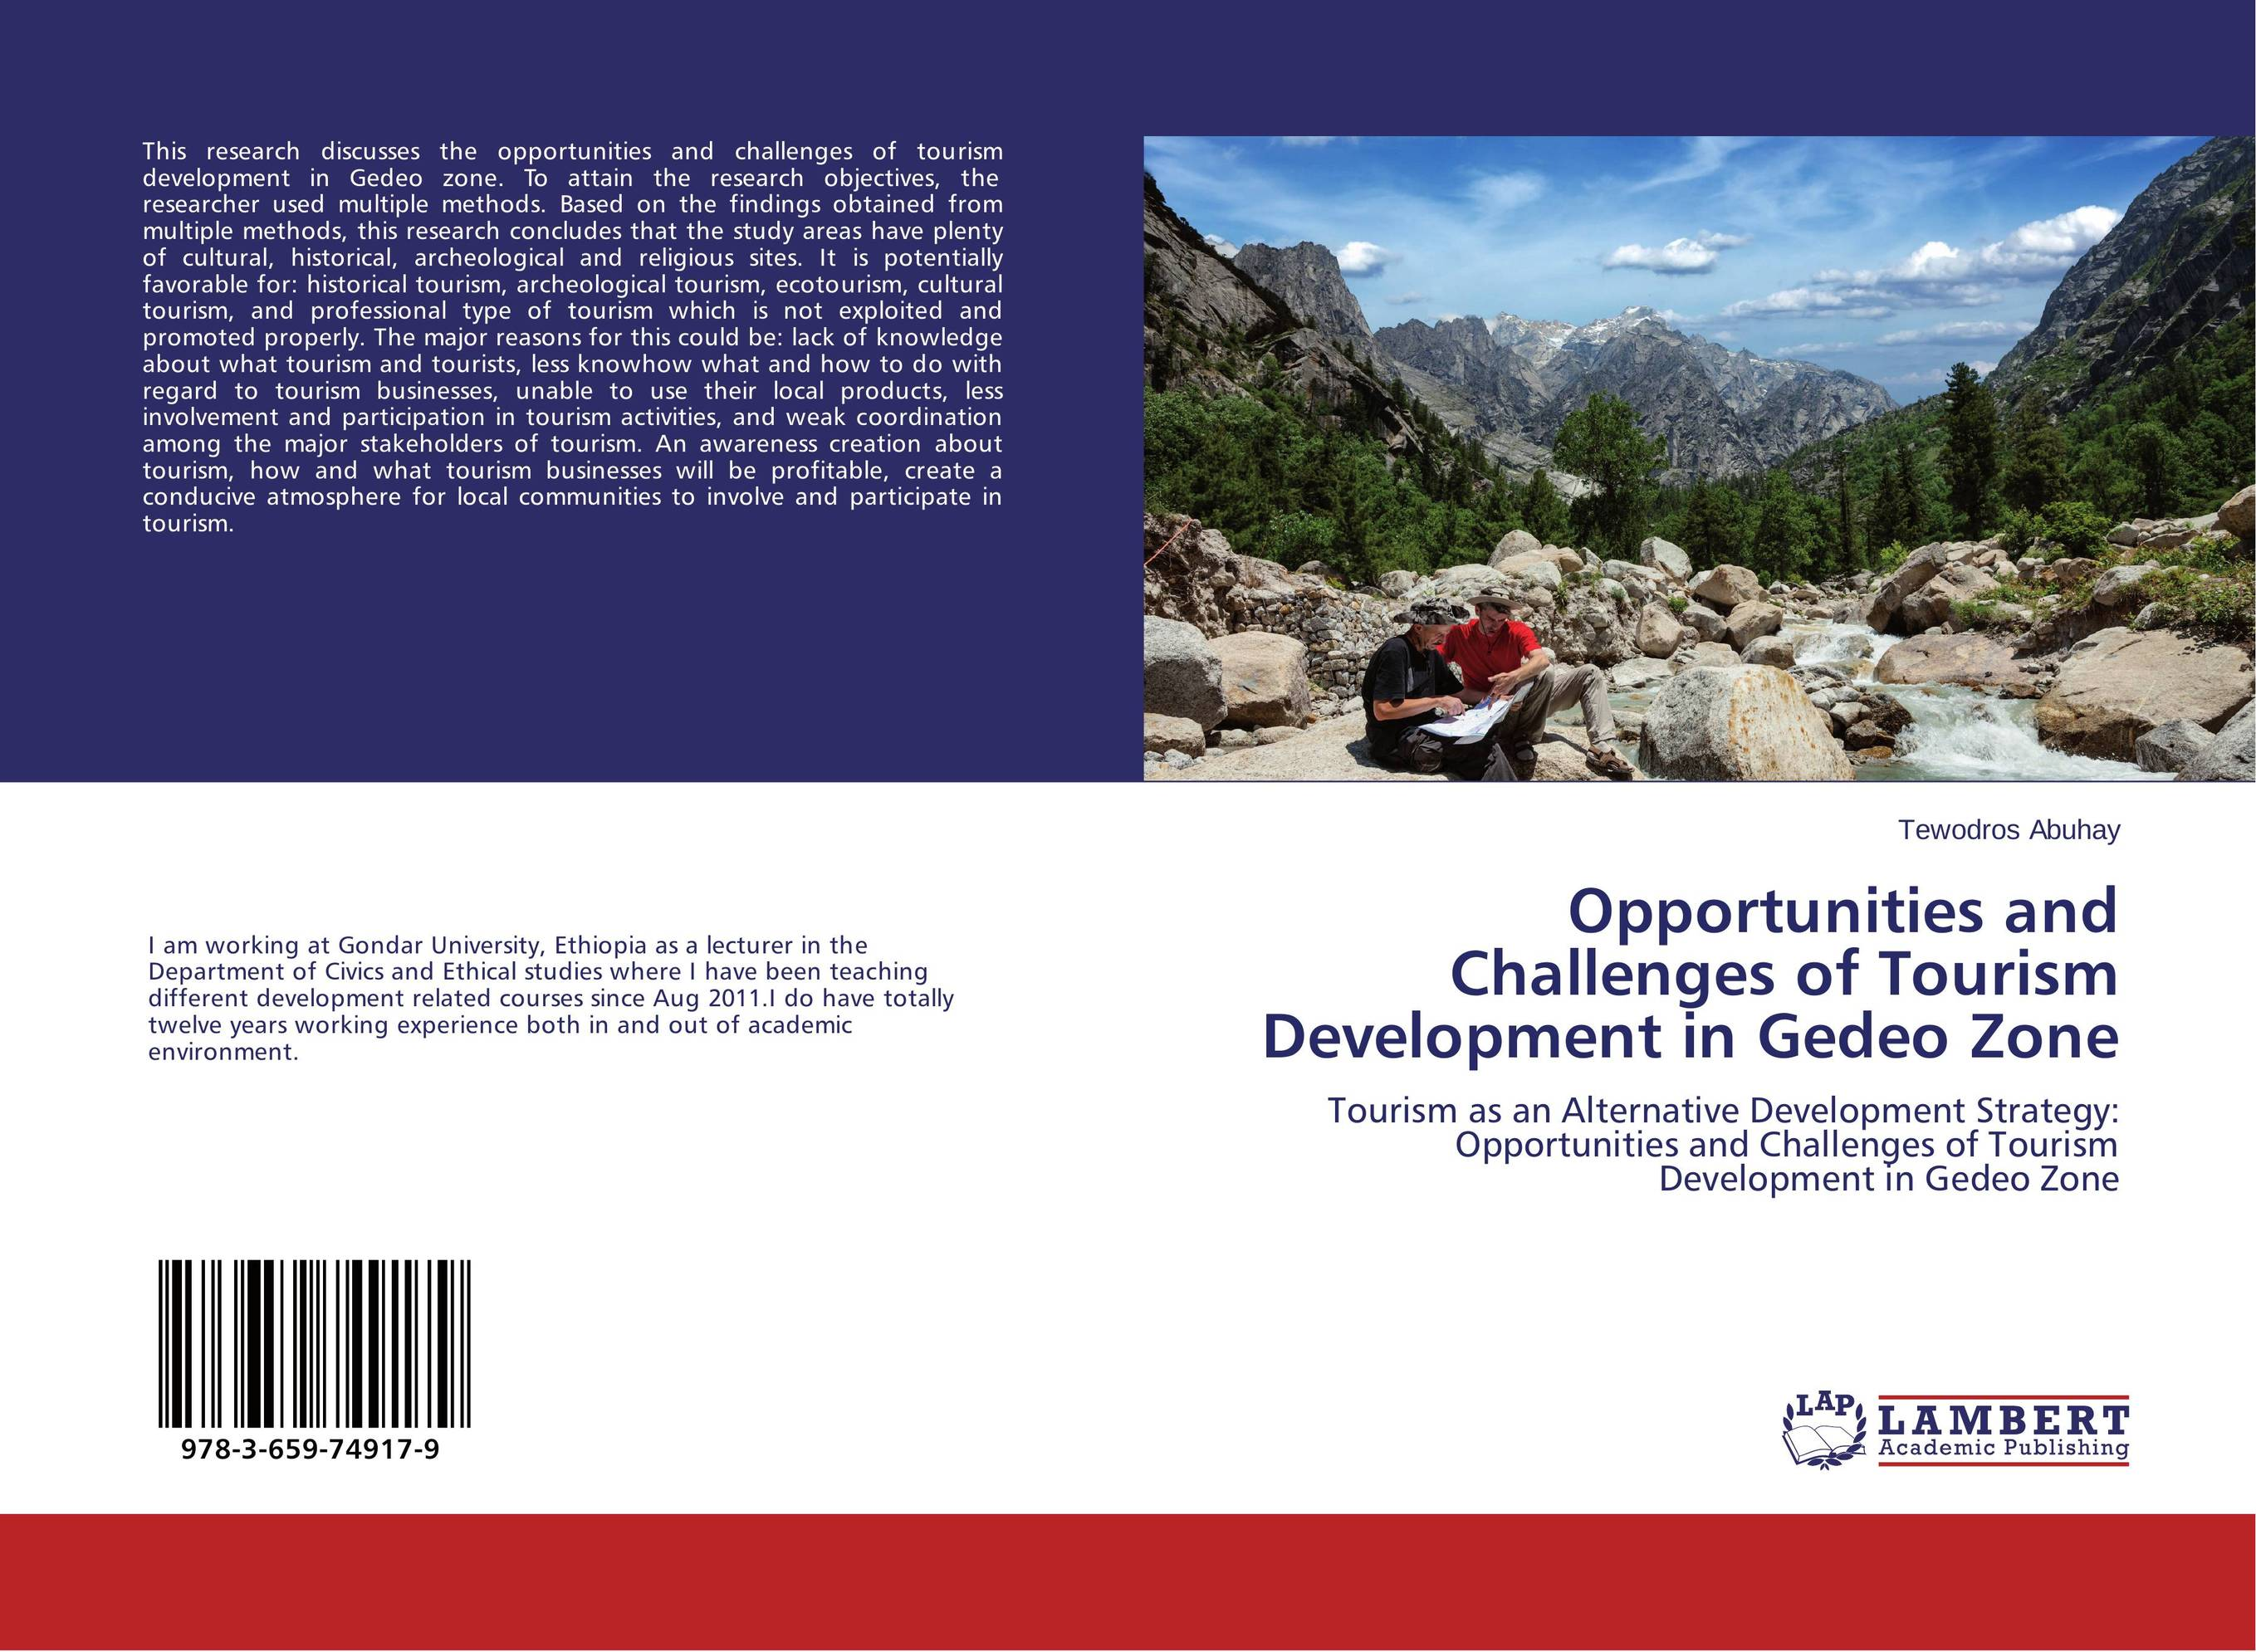 Opportunities and Challenges of Tourism Development in Gedeo Zone